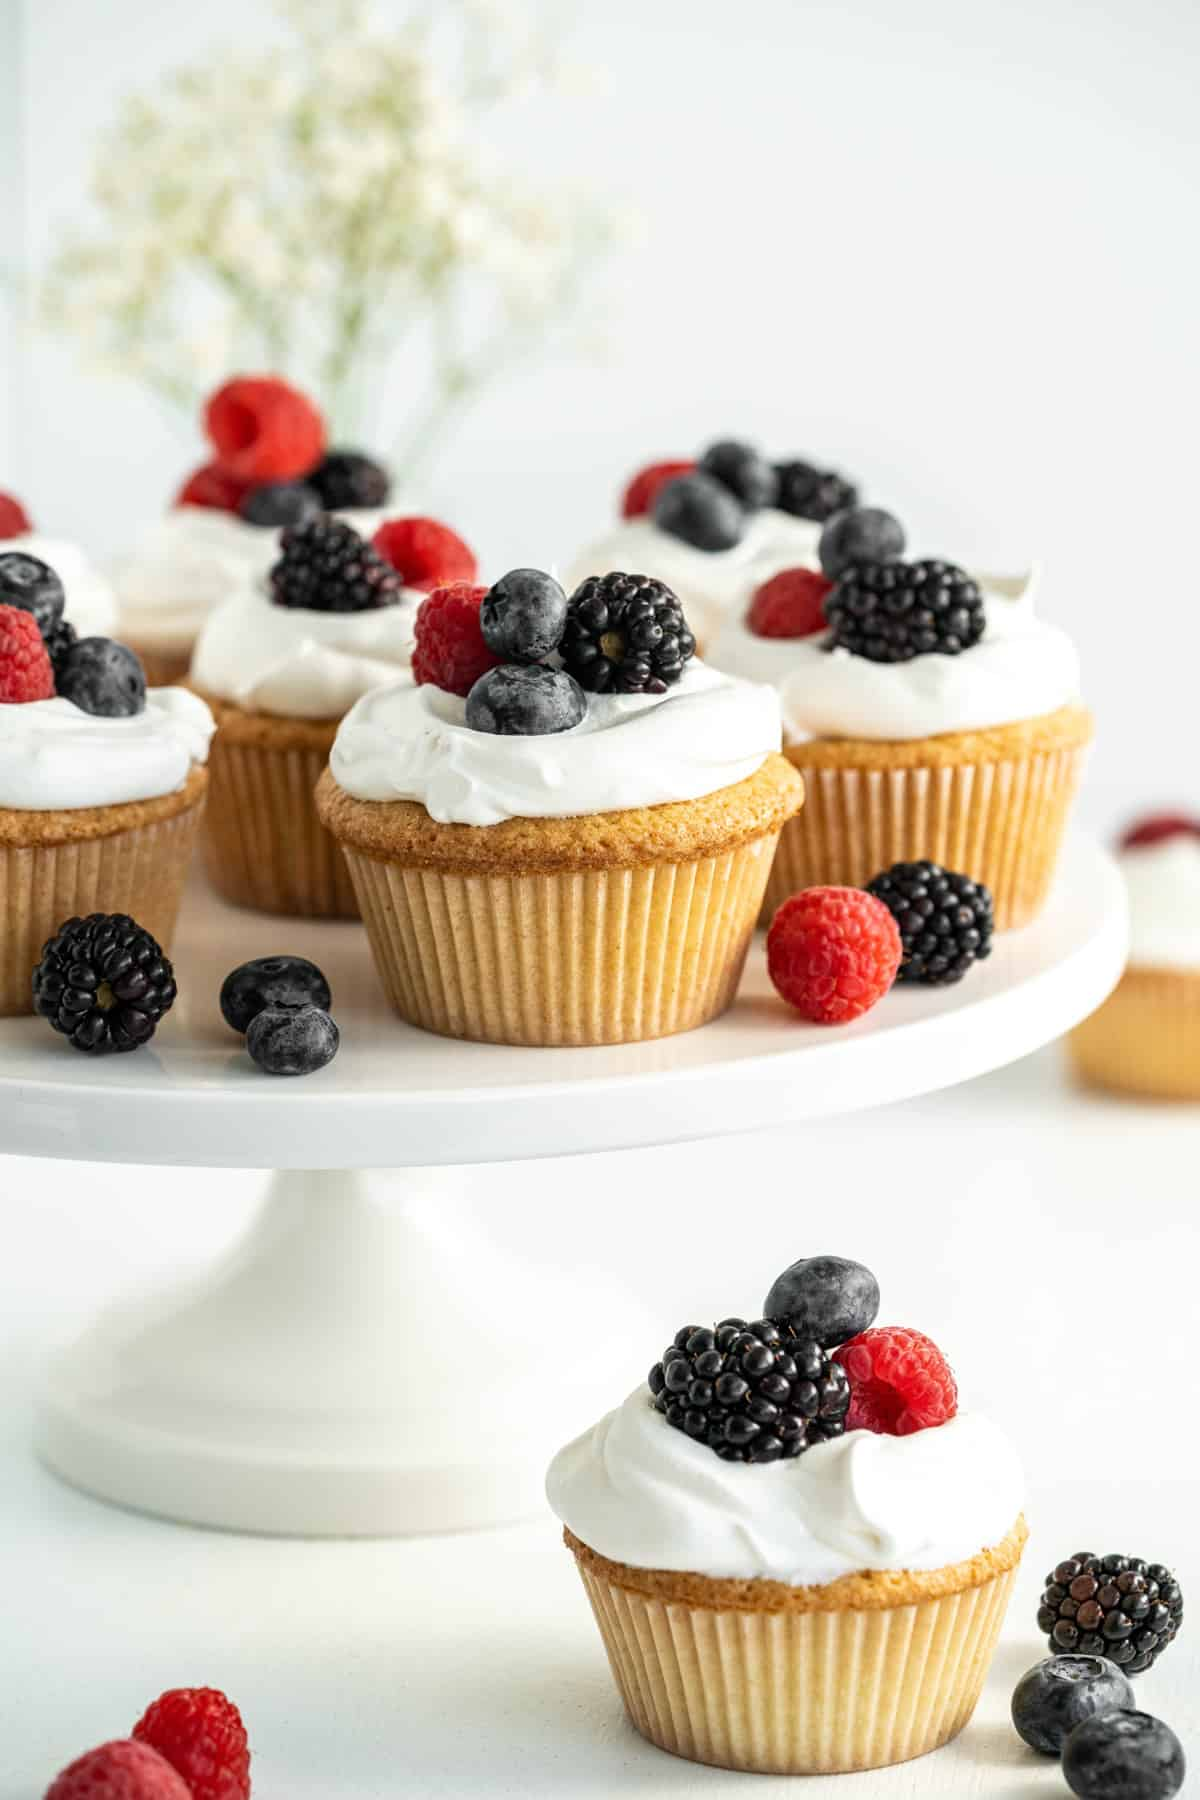 Cake stand with cupcakes and one cupcake below with fruit